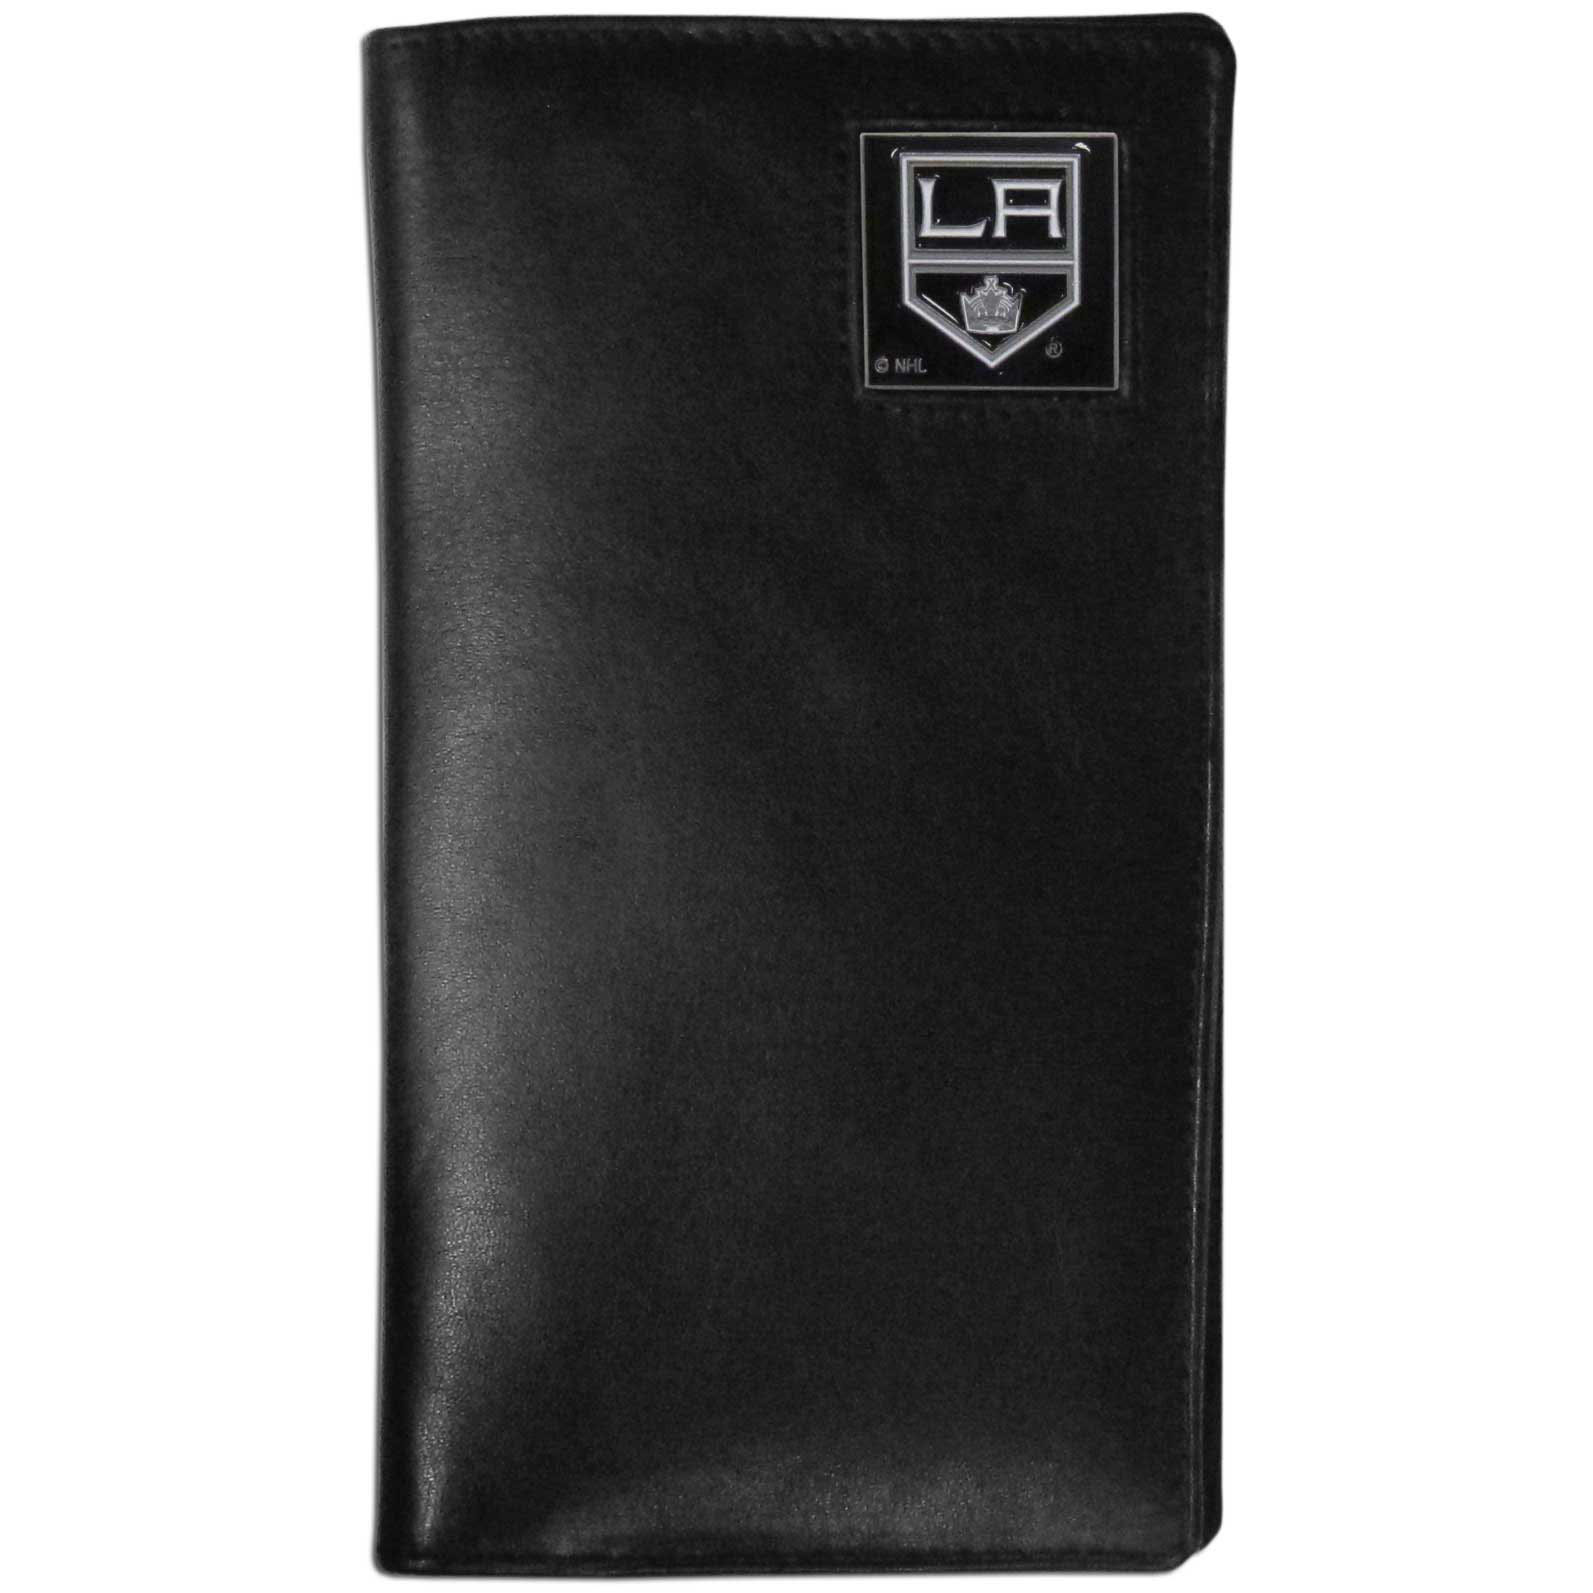 Los Angeles Kings Tall Leather Wallet - This officially licensed Los Angeles Kings tall leather wallet cover is made of high quality leather with a fully cast metal Los Angeles Kings emblem with enameled Los Angeles Kings color detail. The cover fits both side and top loaded checks and includes a large zippered pocket, windowed ID slot, numerous credit card slots and billfold pocket.